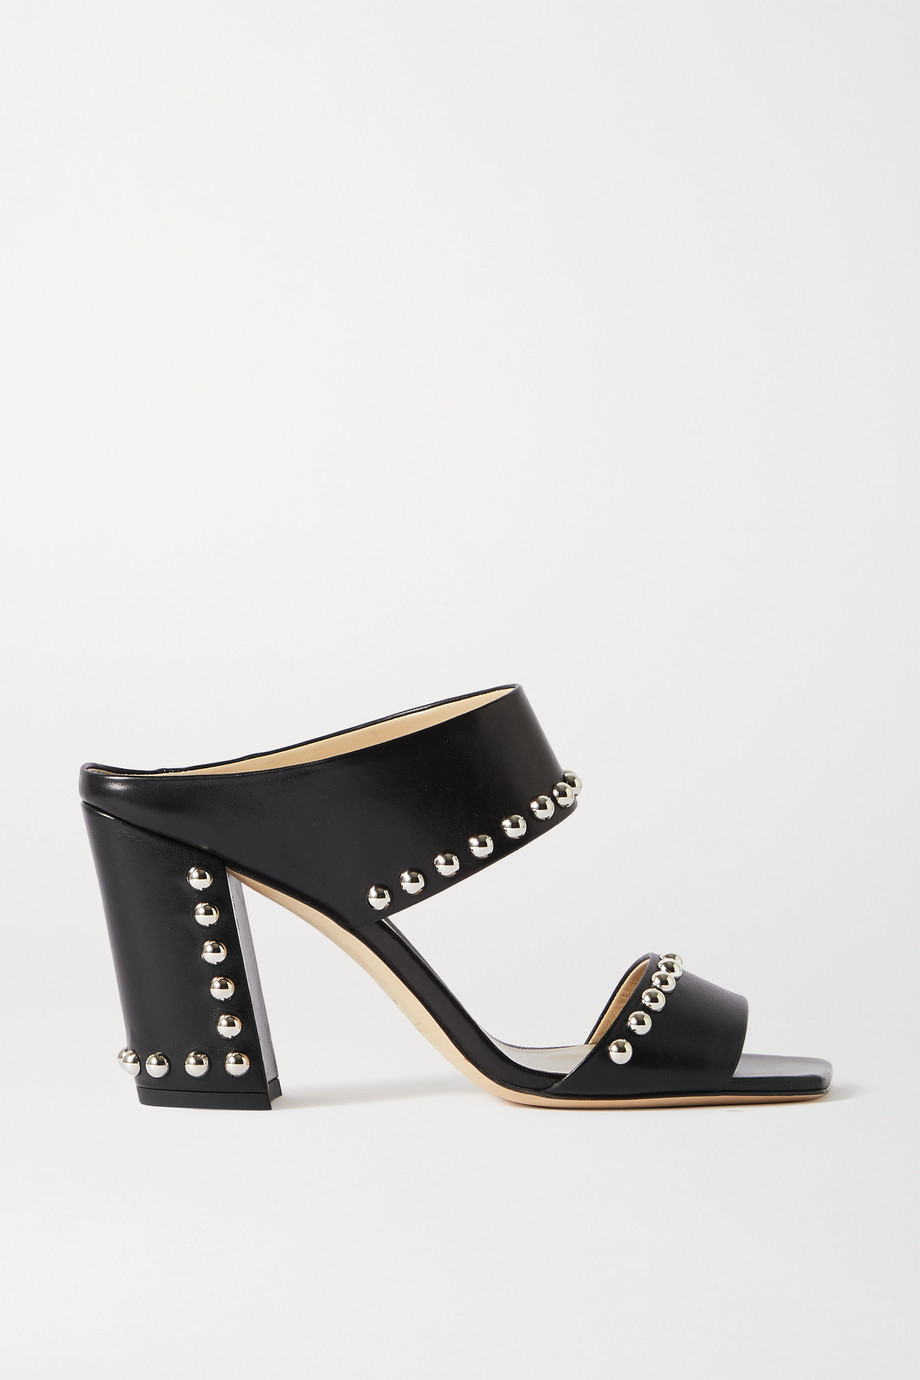 JIMMY CHOO Matty 85 studded leather sandals